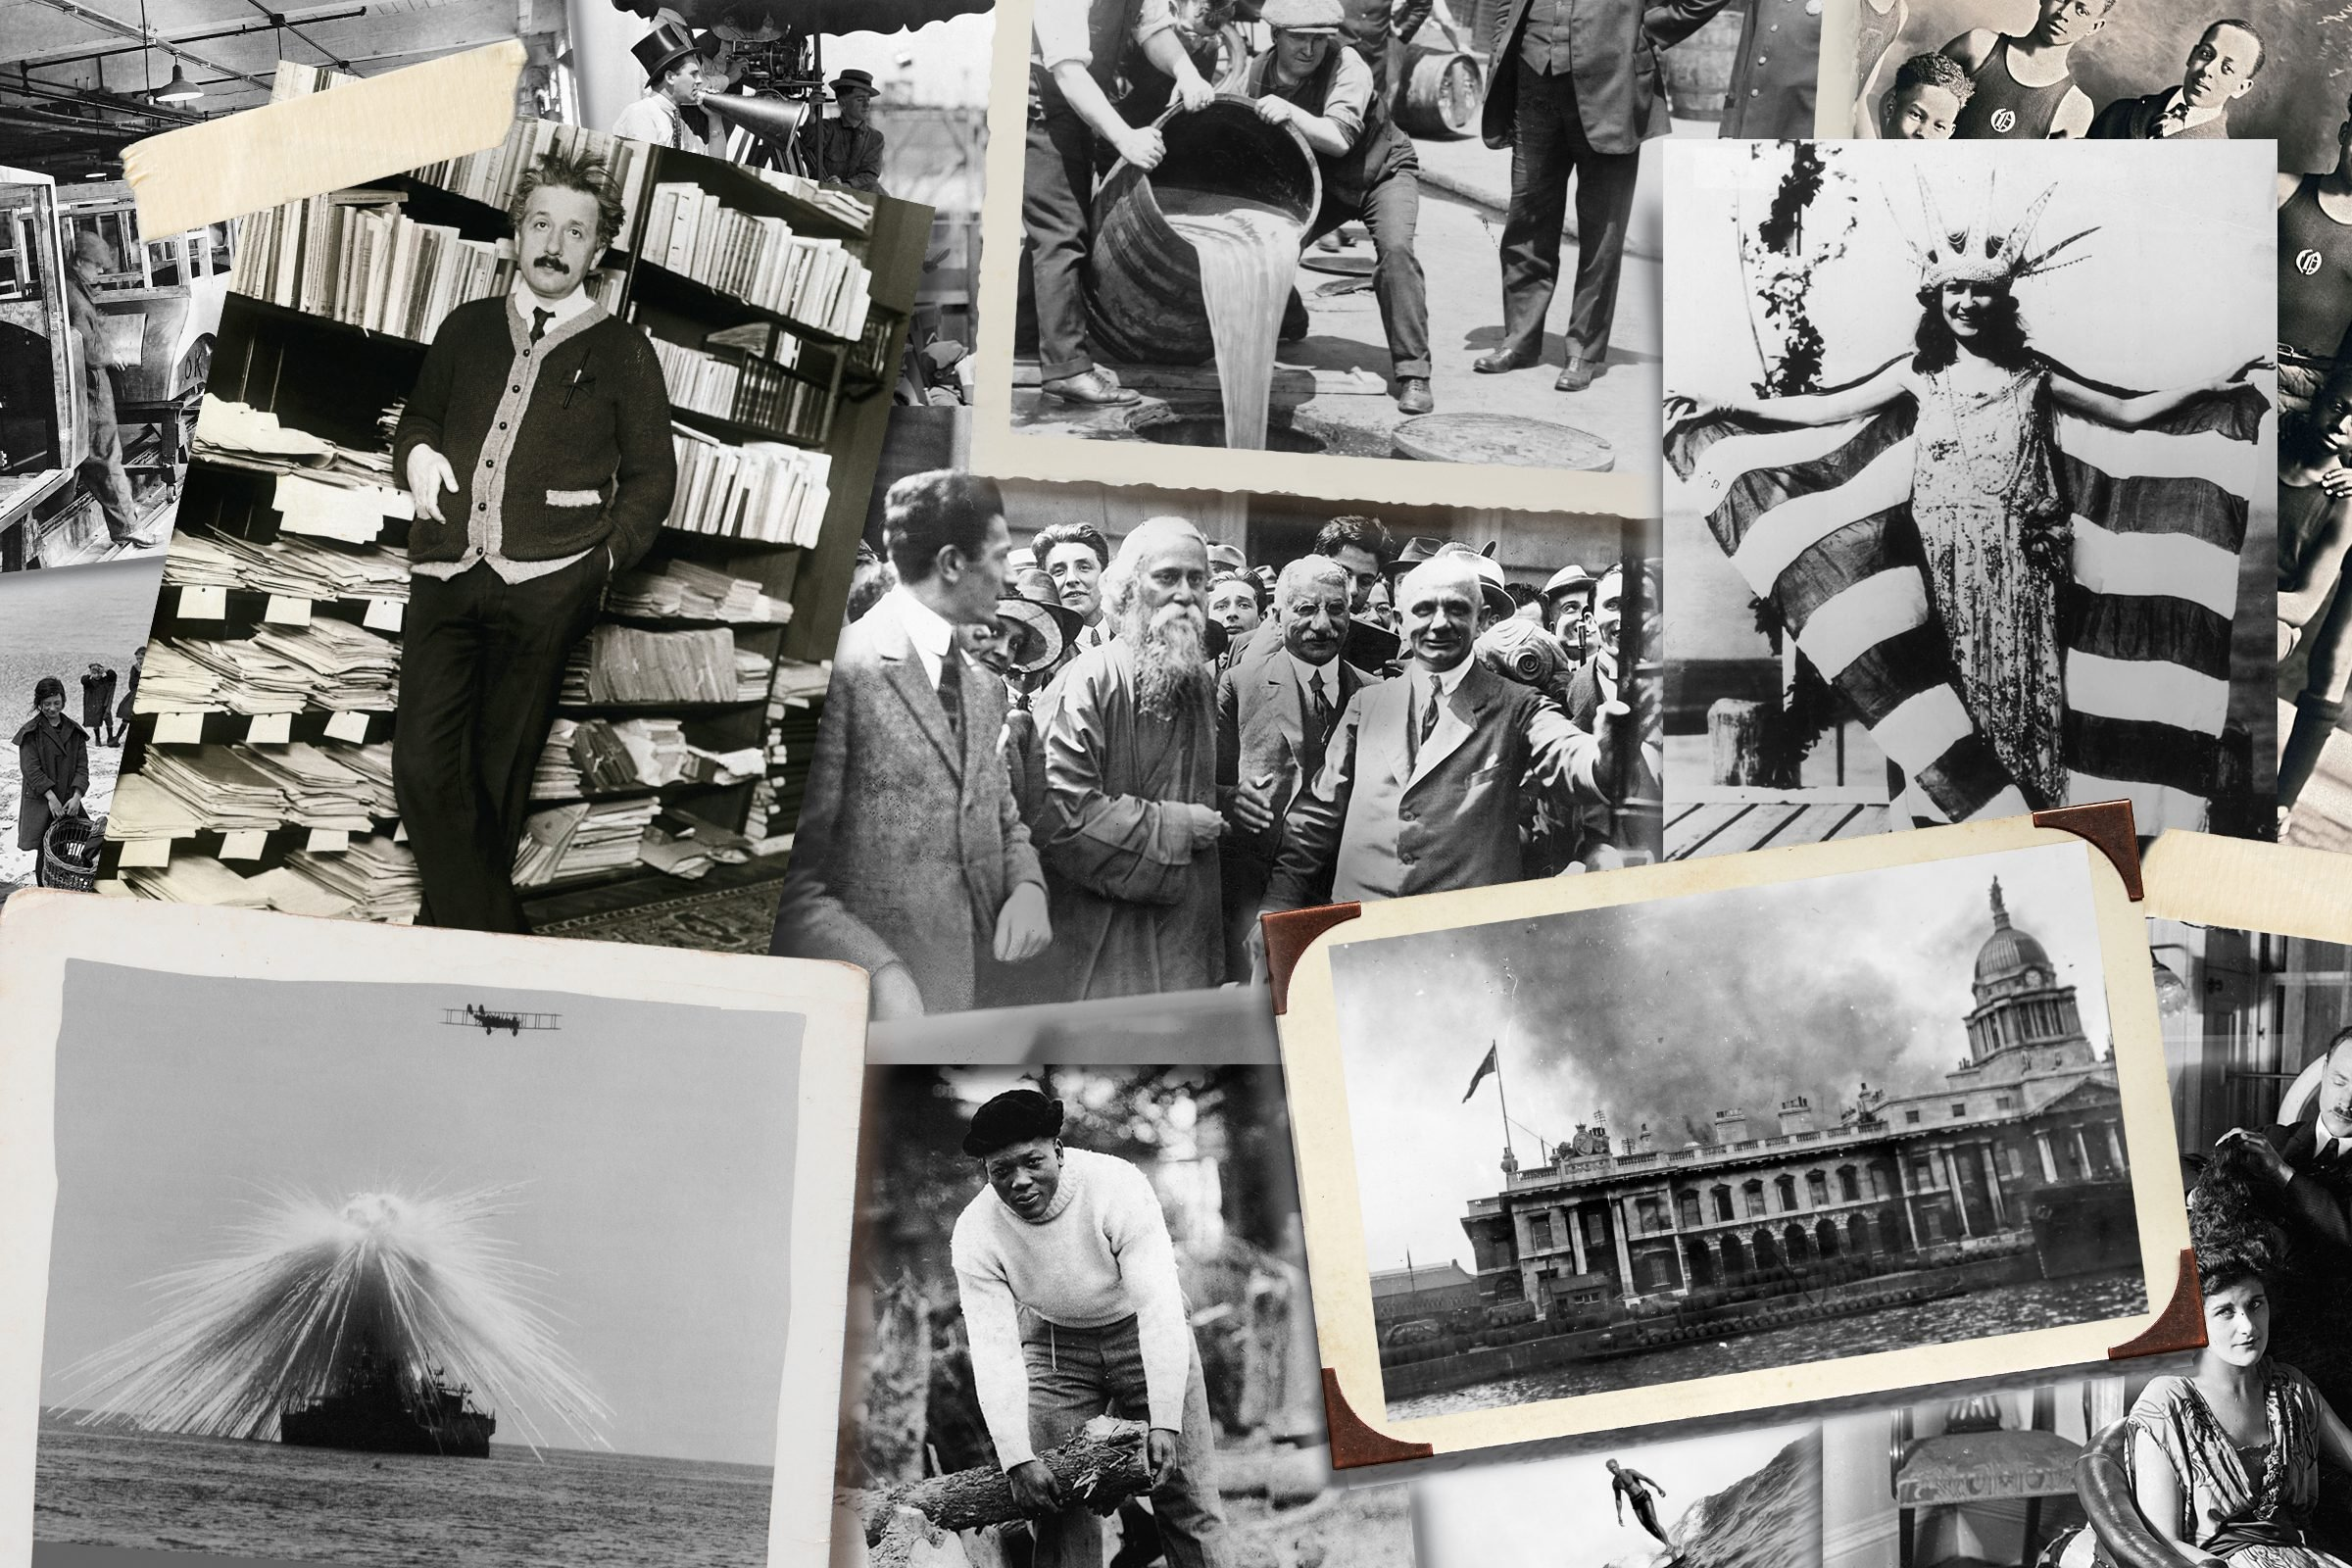 Collage of historical photos